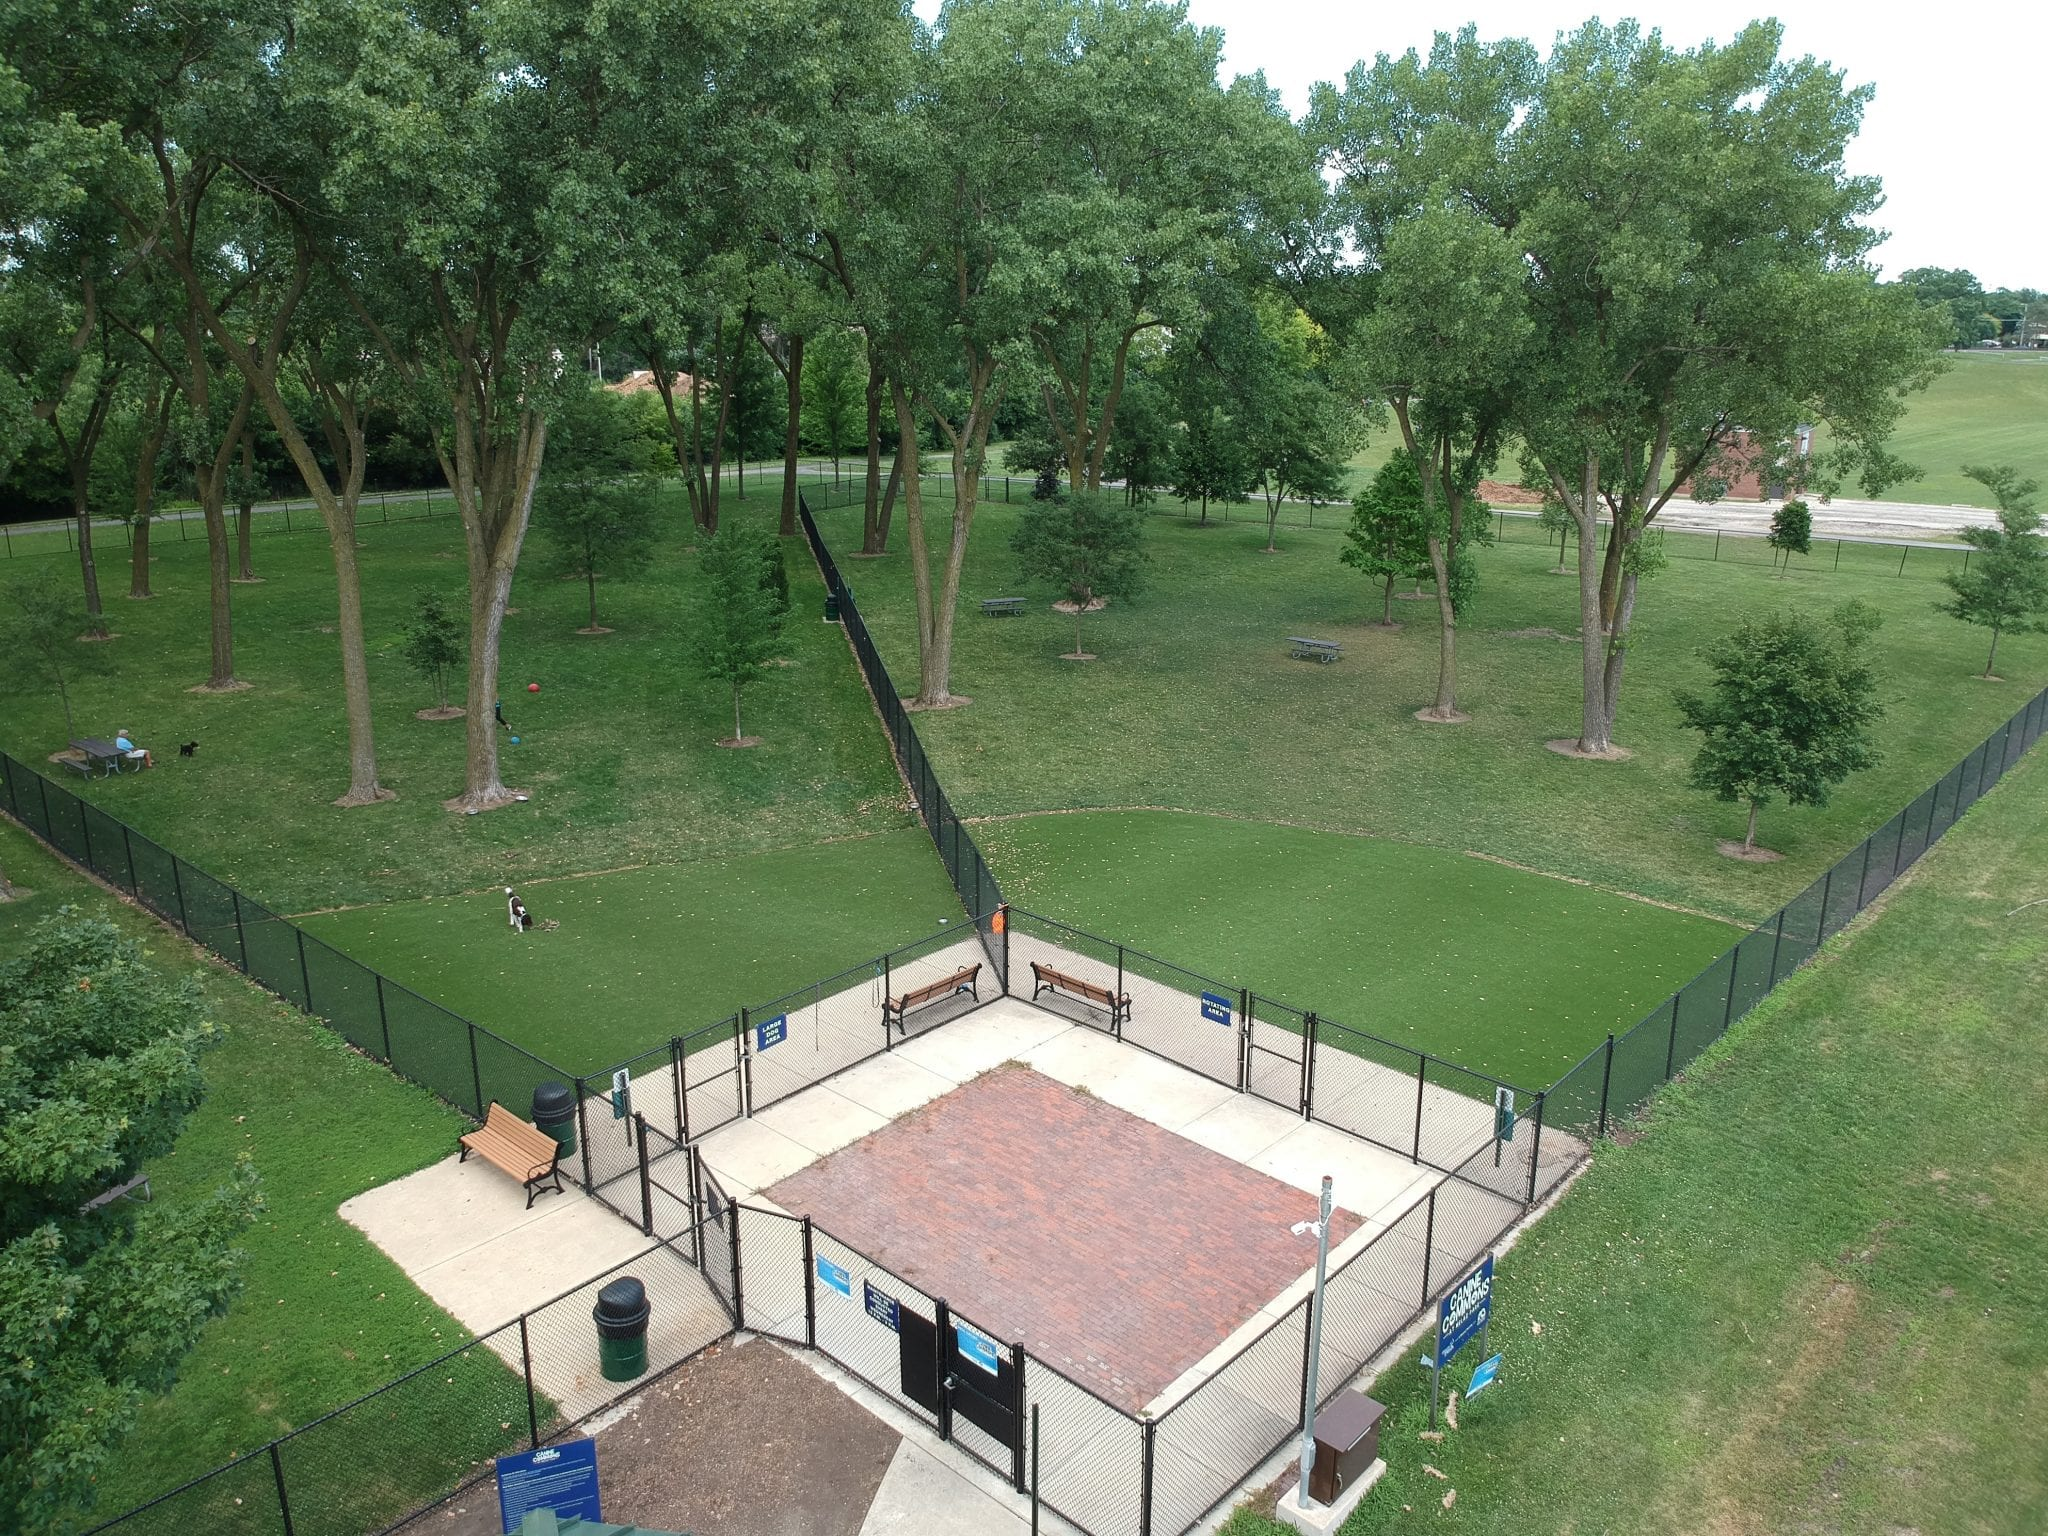 Aerial photo of Perfect Turf used at the Canine Commons Dog Park.